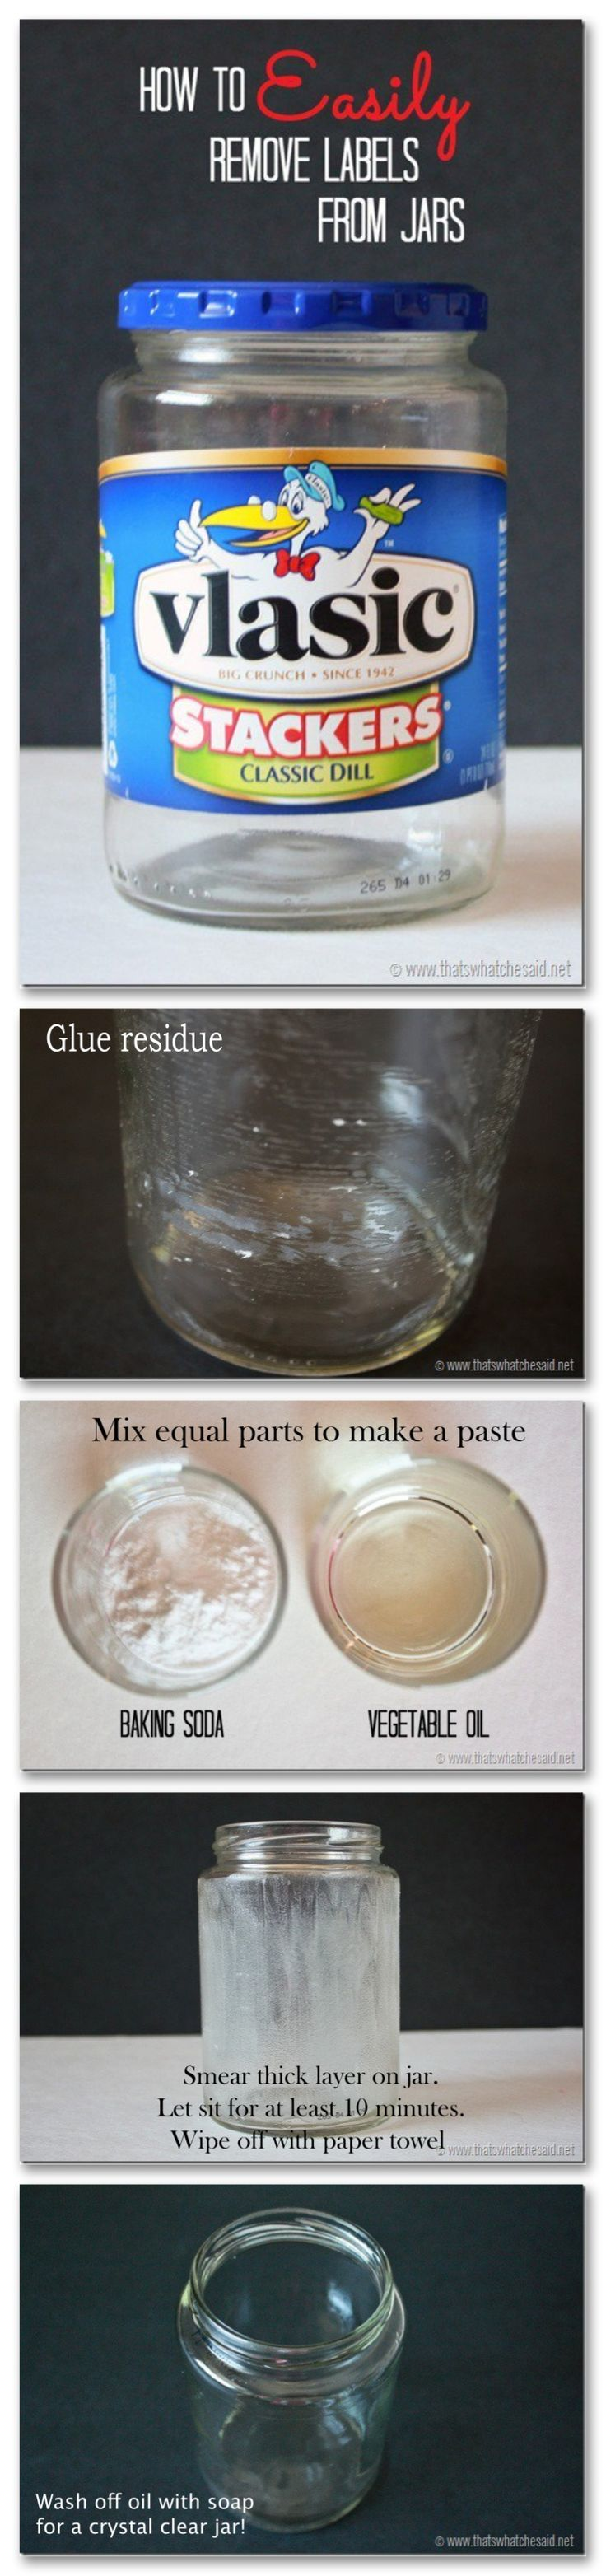 How to remove labels from glass jars